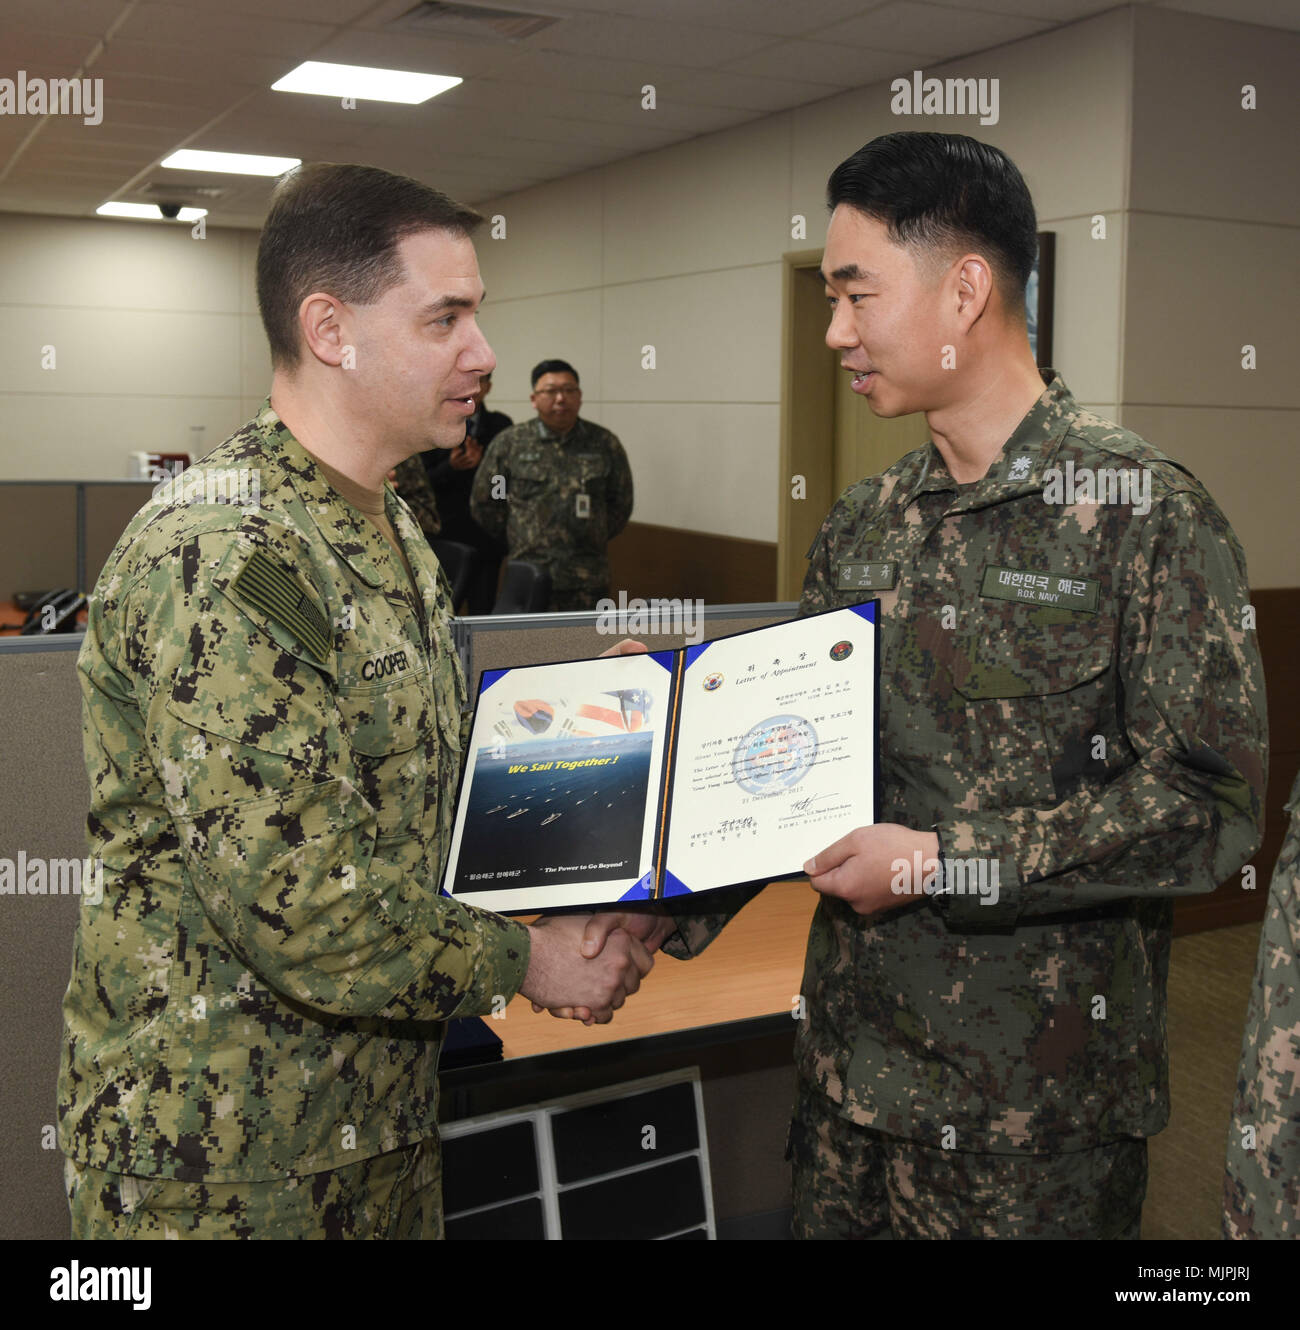 """171221-N-TB148-025 BUSAN, Republic of Korea (Dec. 21, 2017) Rear Adm. Brad Cooper, commander, U.S. Naval Forces Korea (CNFK), presents Lt. Cmdr. Kim, Bo Kyu with a letter of appointment for her selection to the """"Great Young Minds"""" Junior Officers' Engagement and Cooperation Program. The """"Great Young Minds"""" initiative brings together hand-selected, young officers from the ROK and U.S. navies and challenges them to develop innovative solutions to further enhance the ROK -U.S. alliance of the future. (U.S. Navy photo by Mass Communication Specialist Seaman William Carlisle) Stock Photo"""